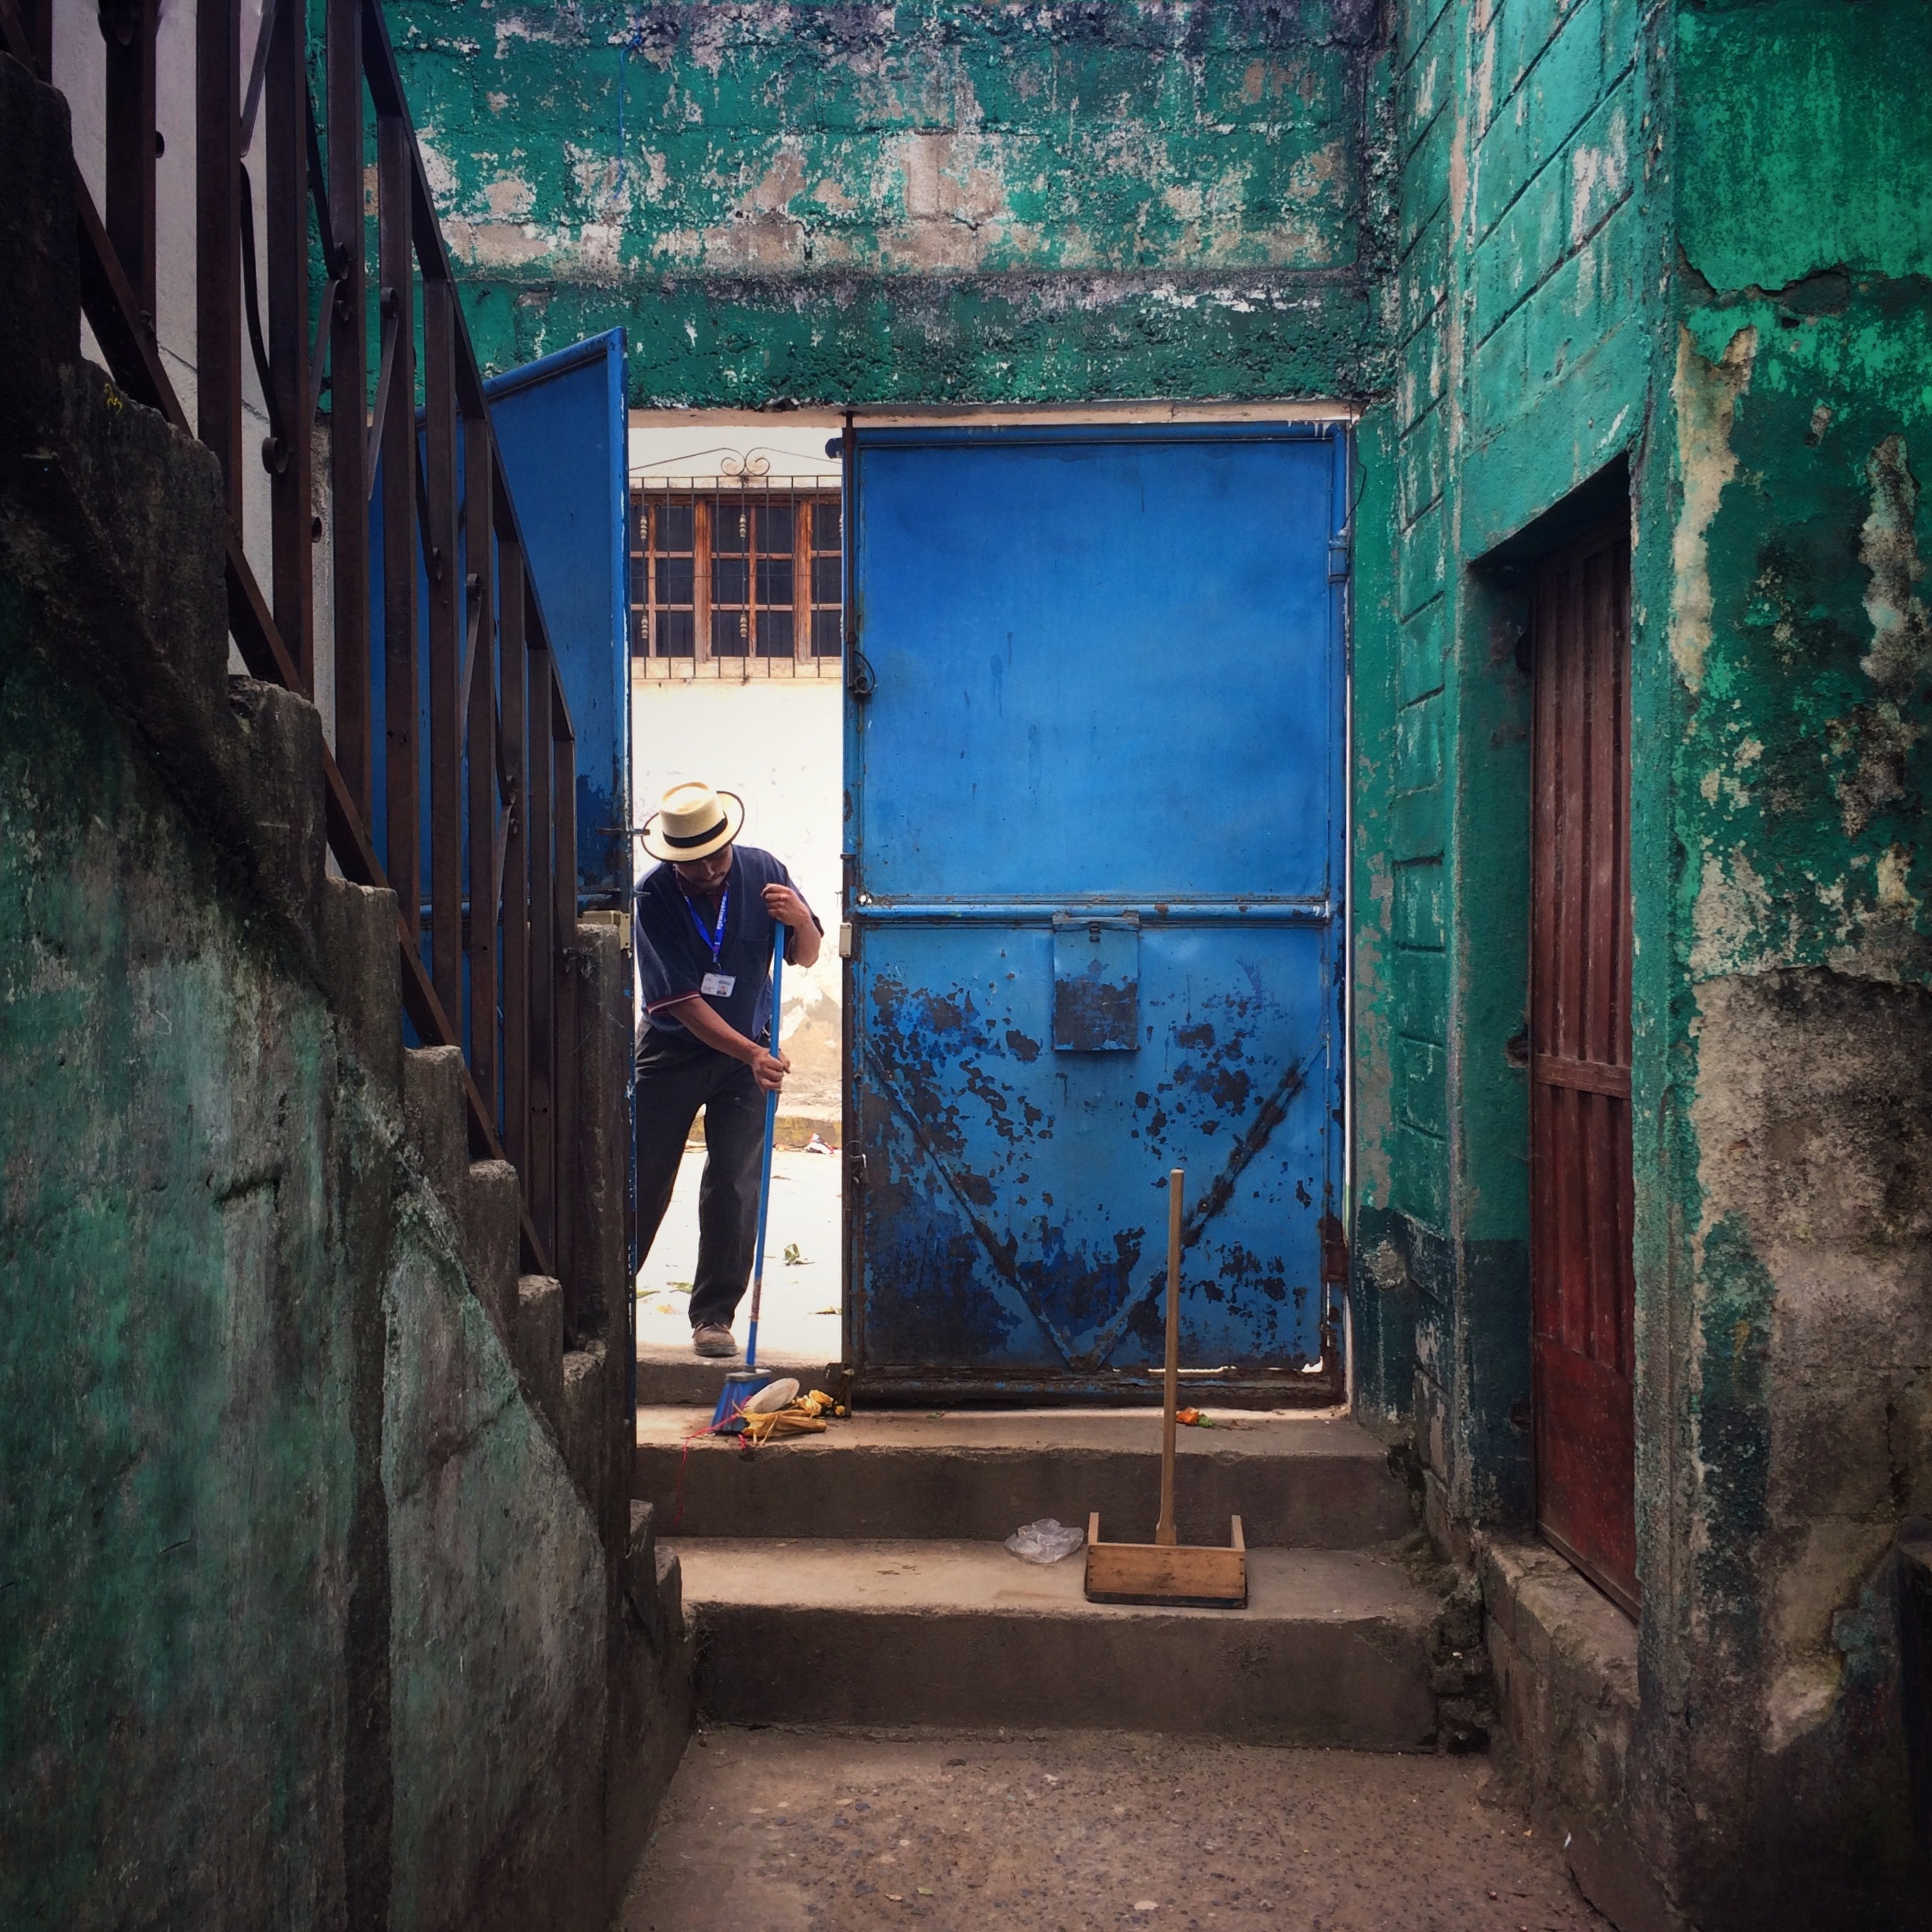 An Ixil Mayan man sweeps the entrance to a local school in Nebaj that will be used as a voting center for the Presidential elections later in the day. Nebaj, QuichŽ, Guatemala. October 24, 2015. (James Rodriguez)